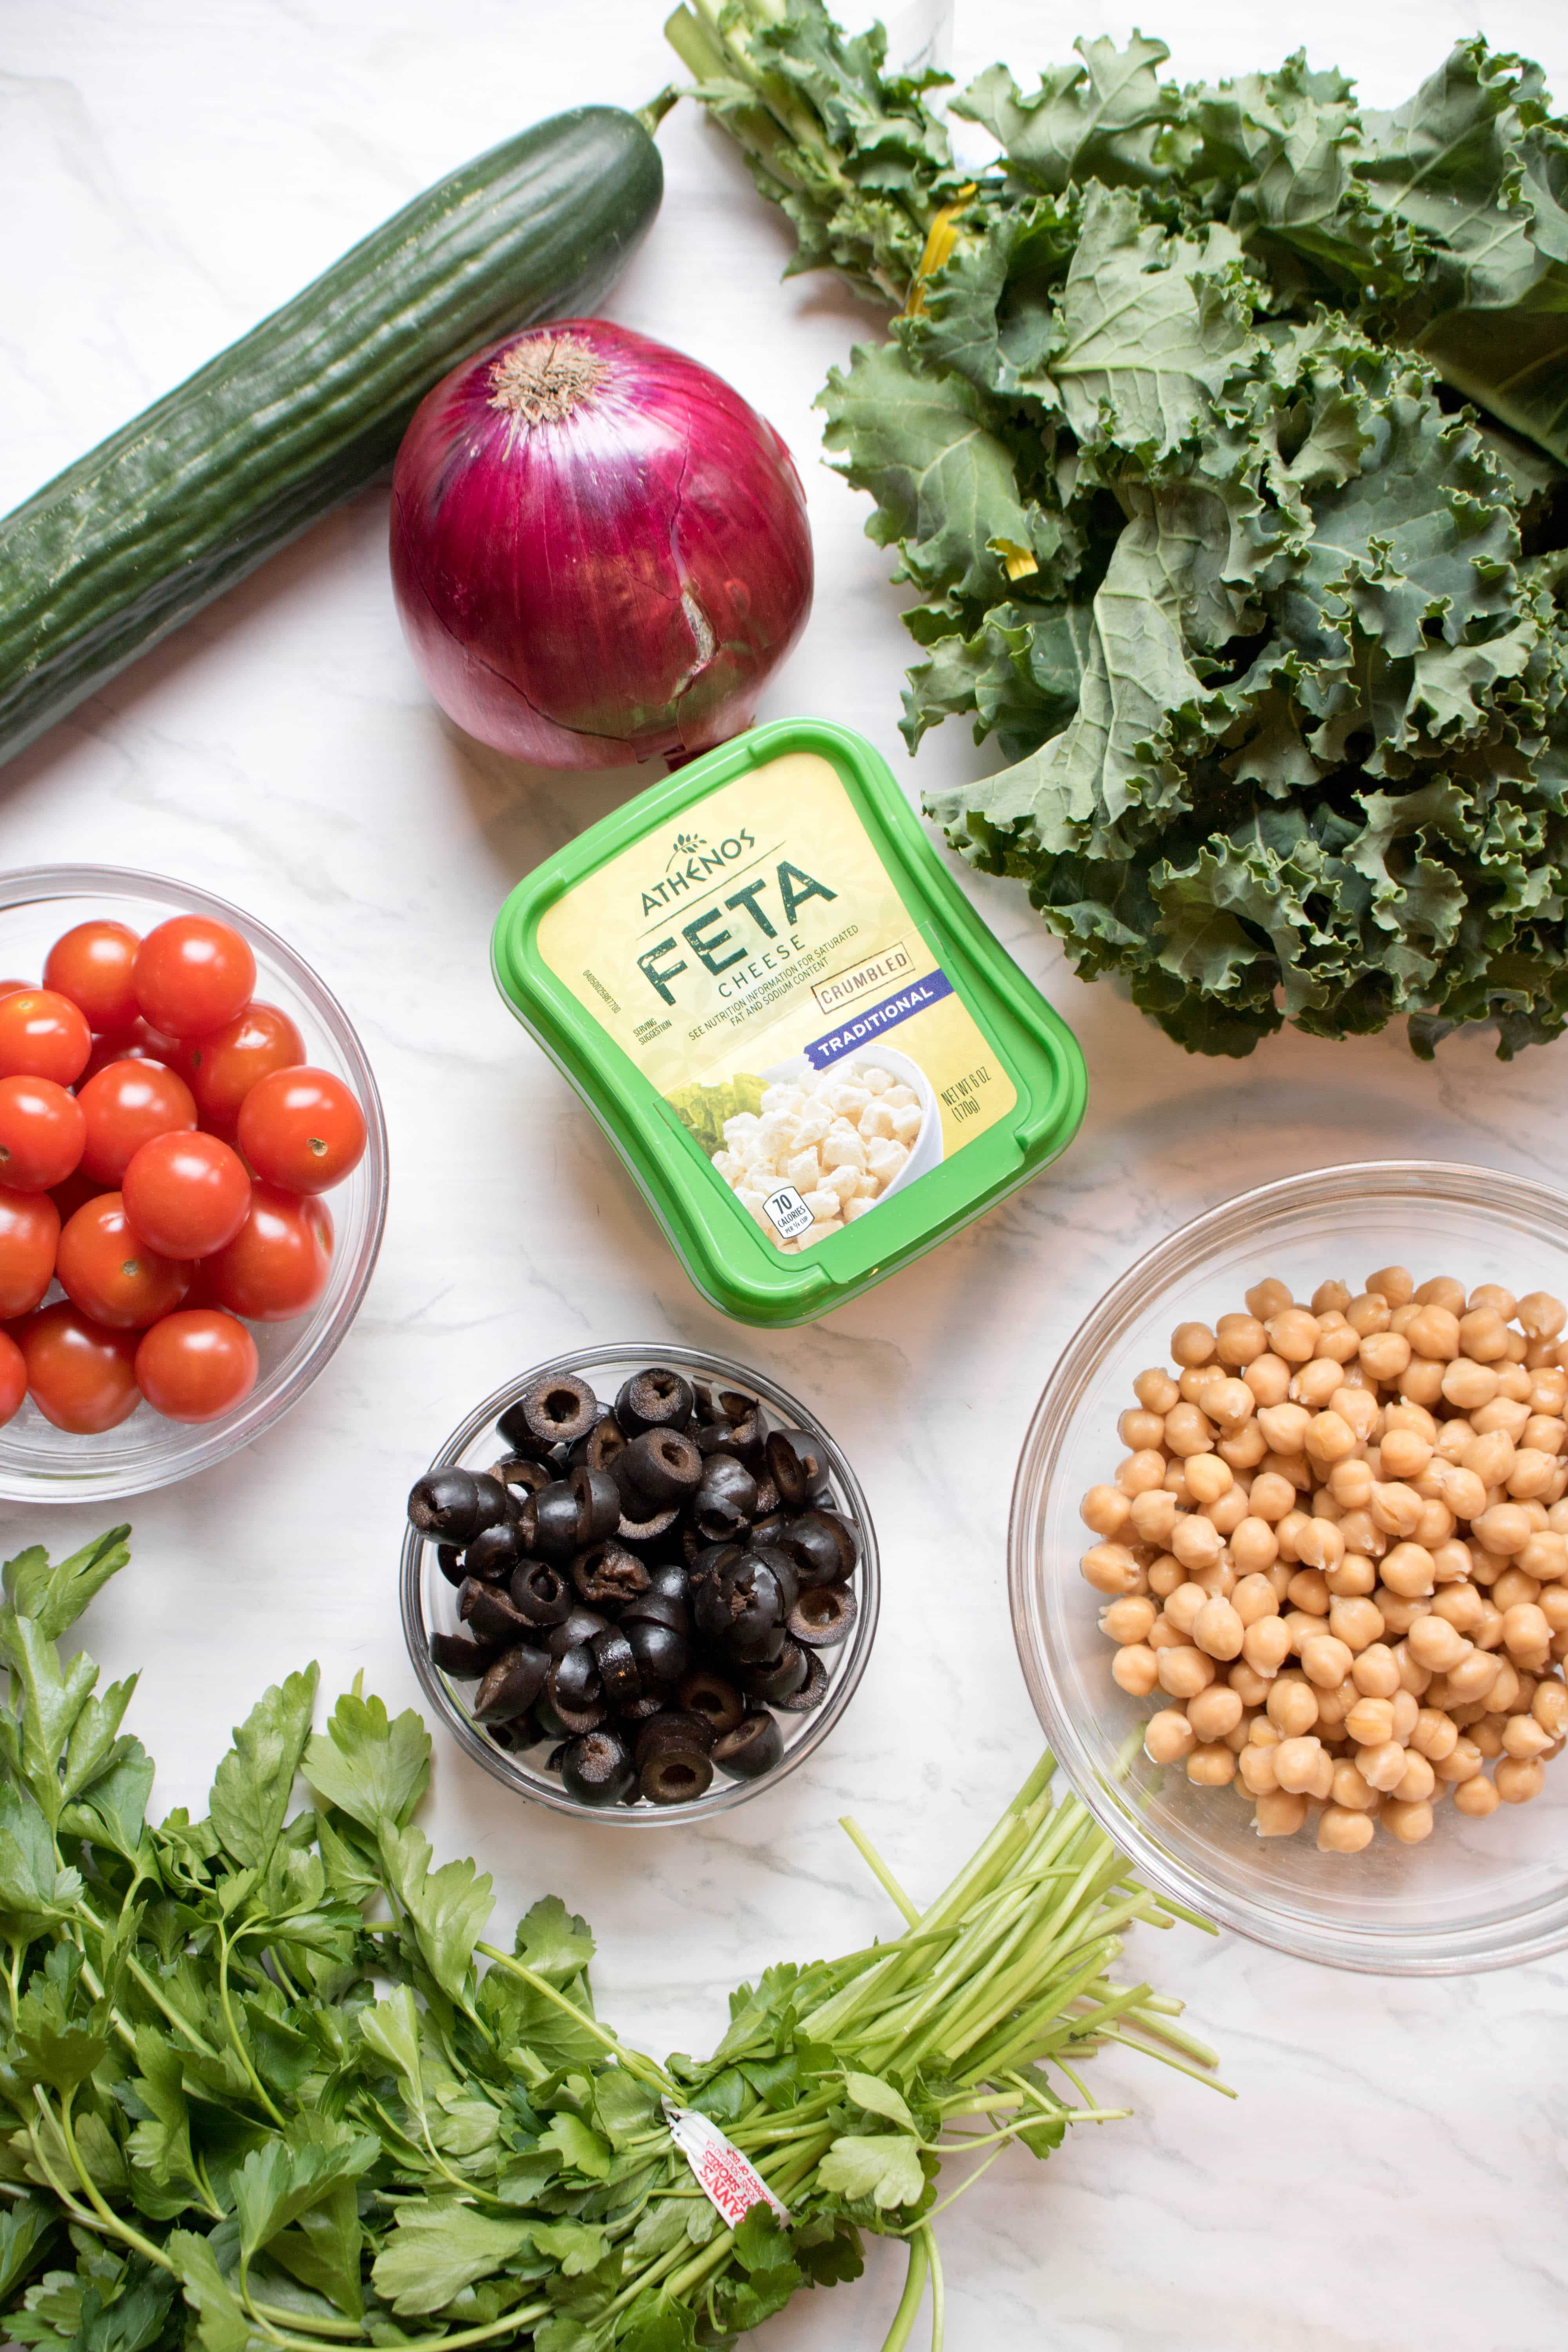 Tomatoes, Feta, olives, cucumbers, tomatoespluskale and chickpeas. Everything you want in a greek salad but with kale, this Chickpea Kale Greek Salad is a heartier, healthier Greek salad!